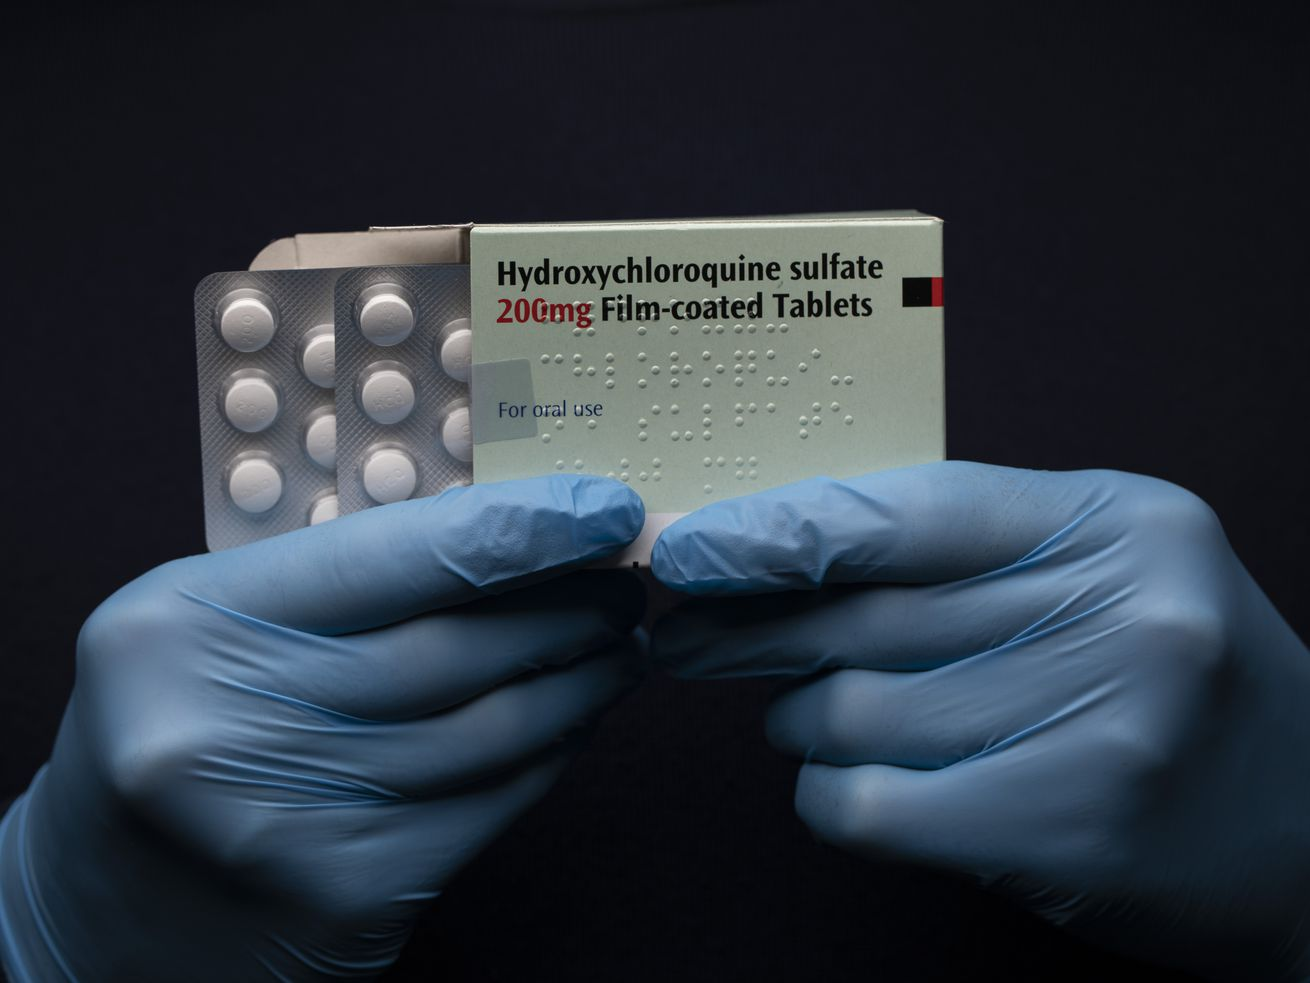 Hands holding ups package of Hydroxychloroquine Sulfate medication.